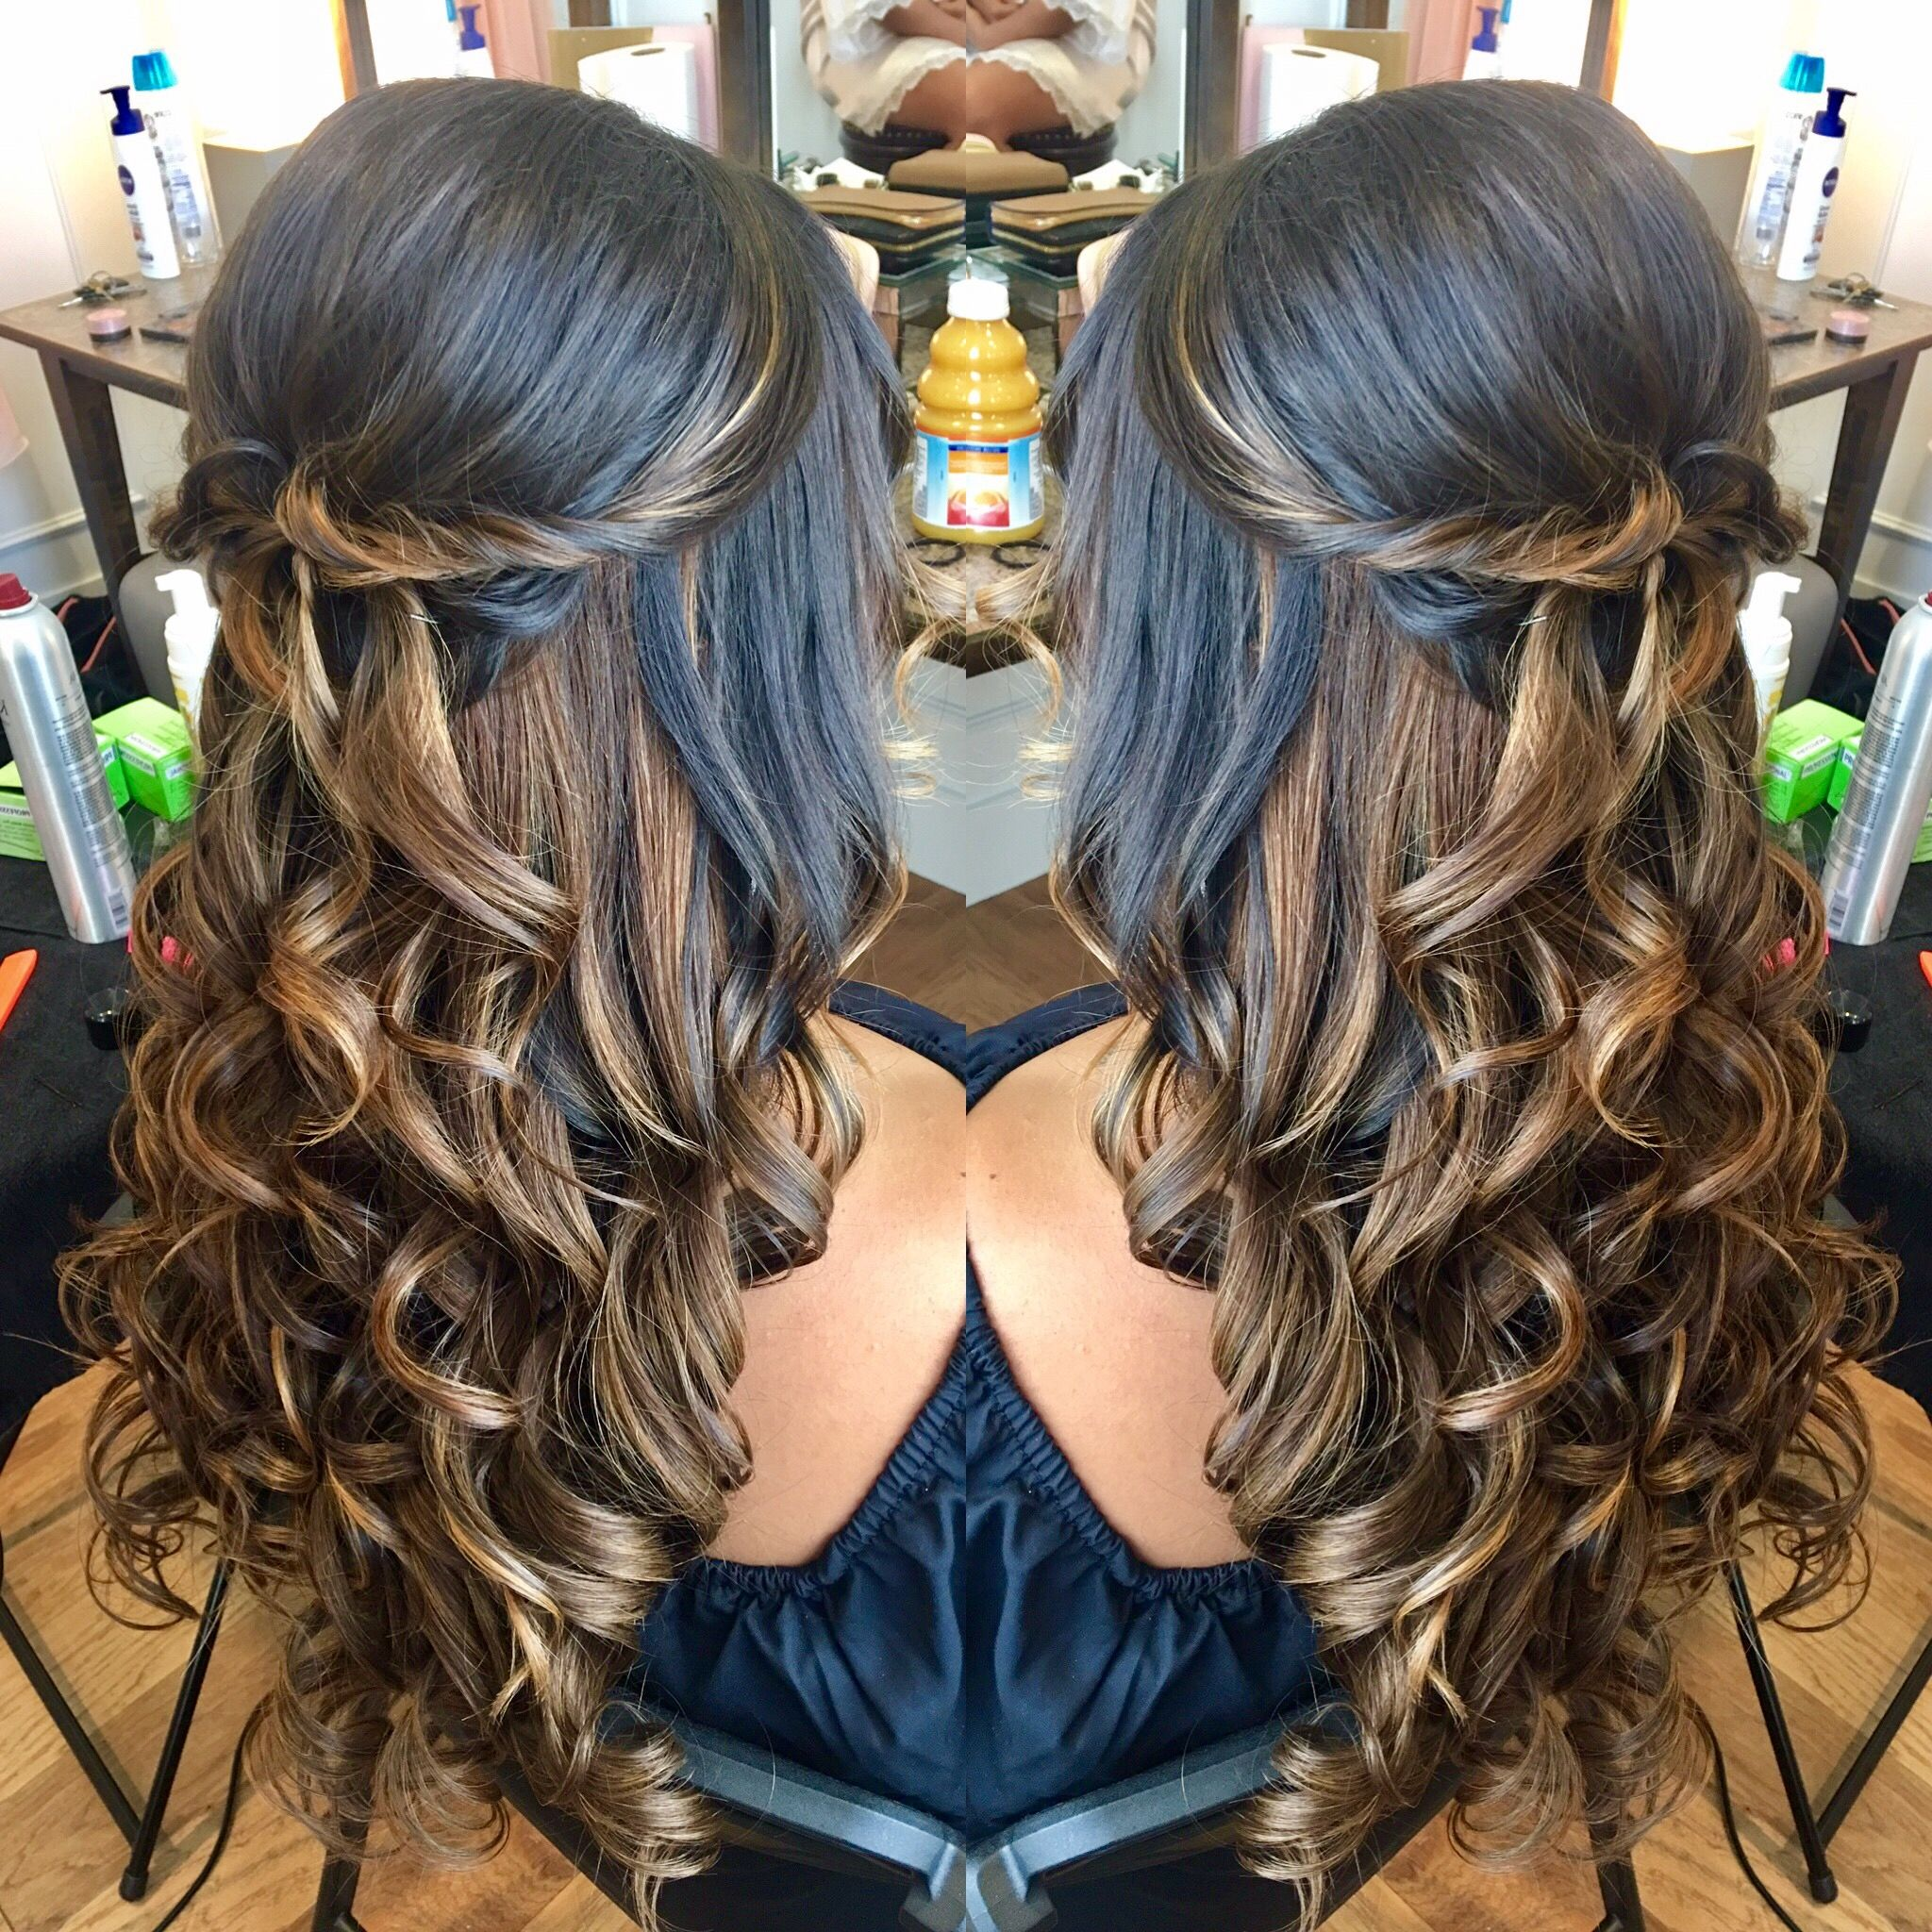 Twisted half up half down hairstyle   Hair styles, Half up ...